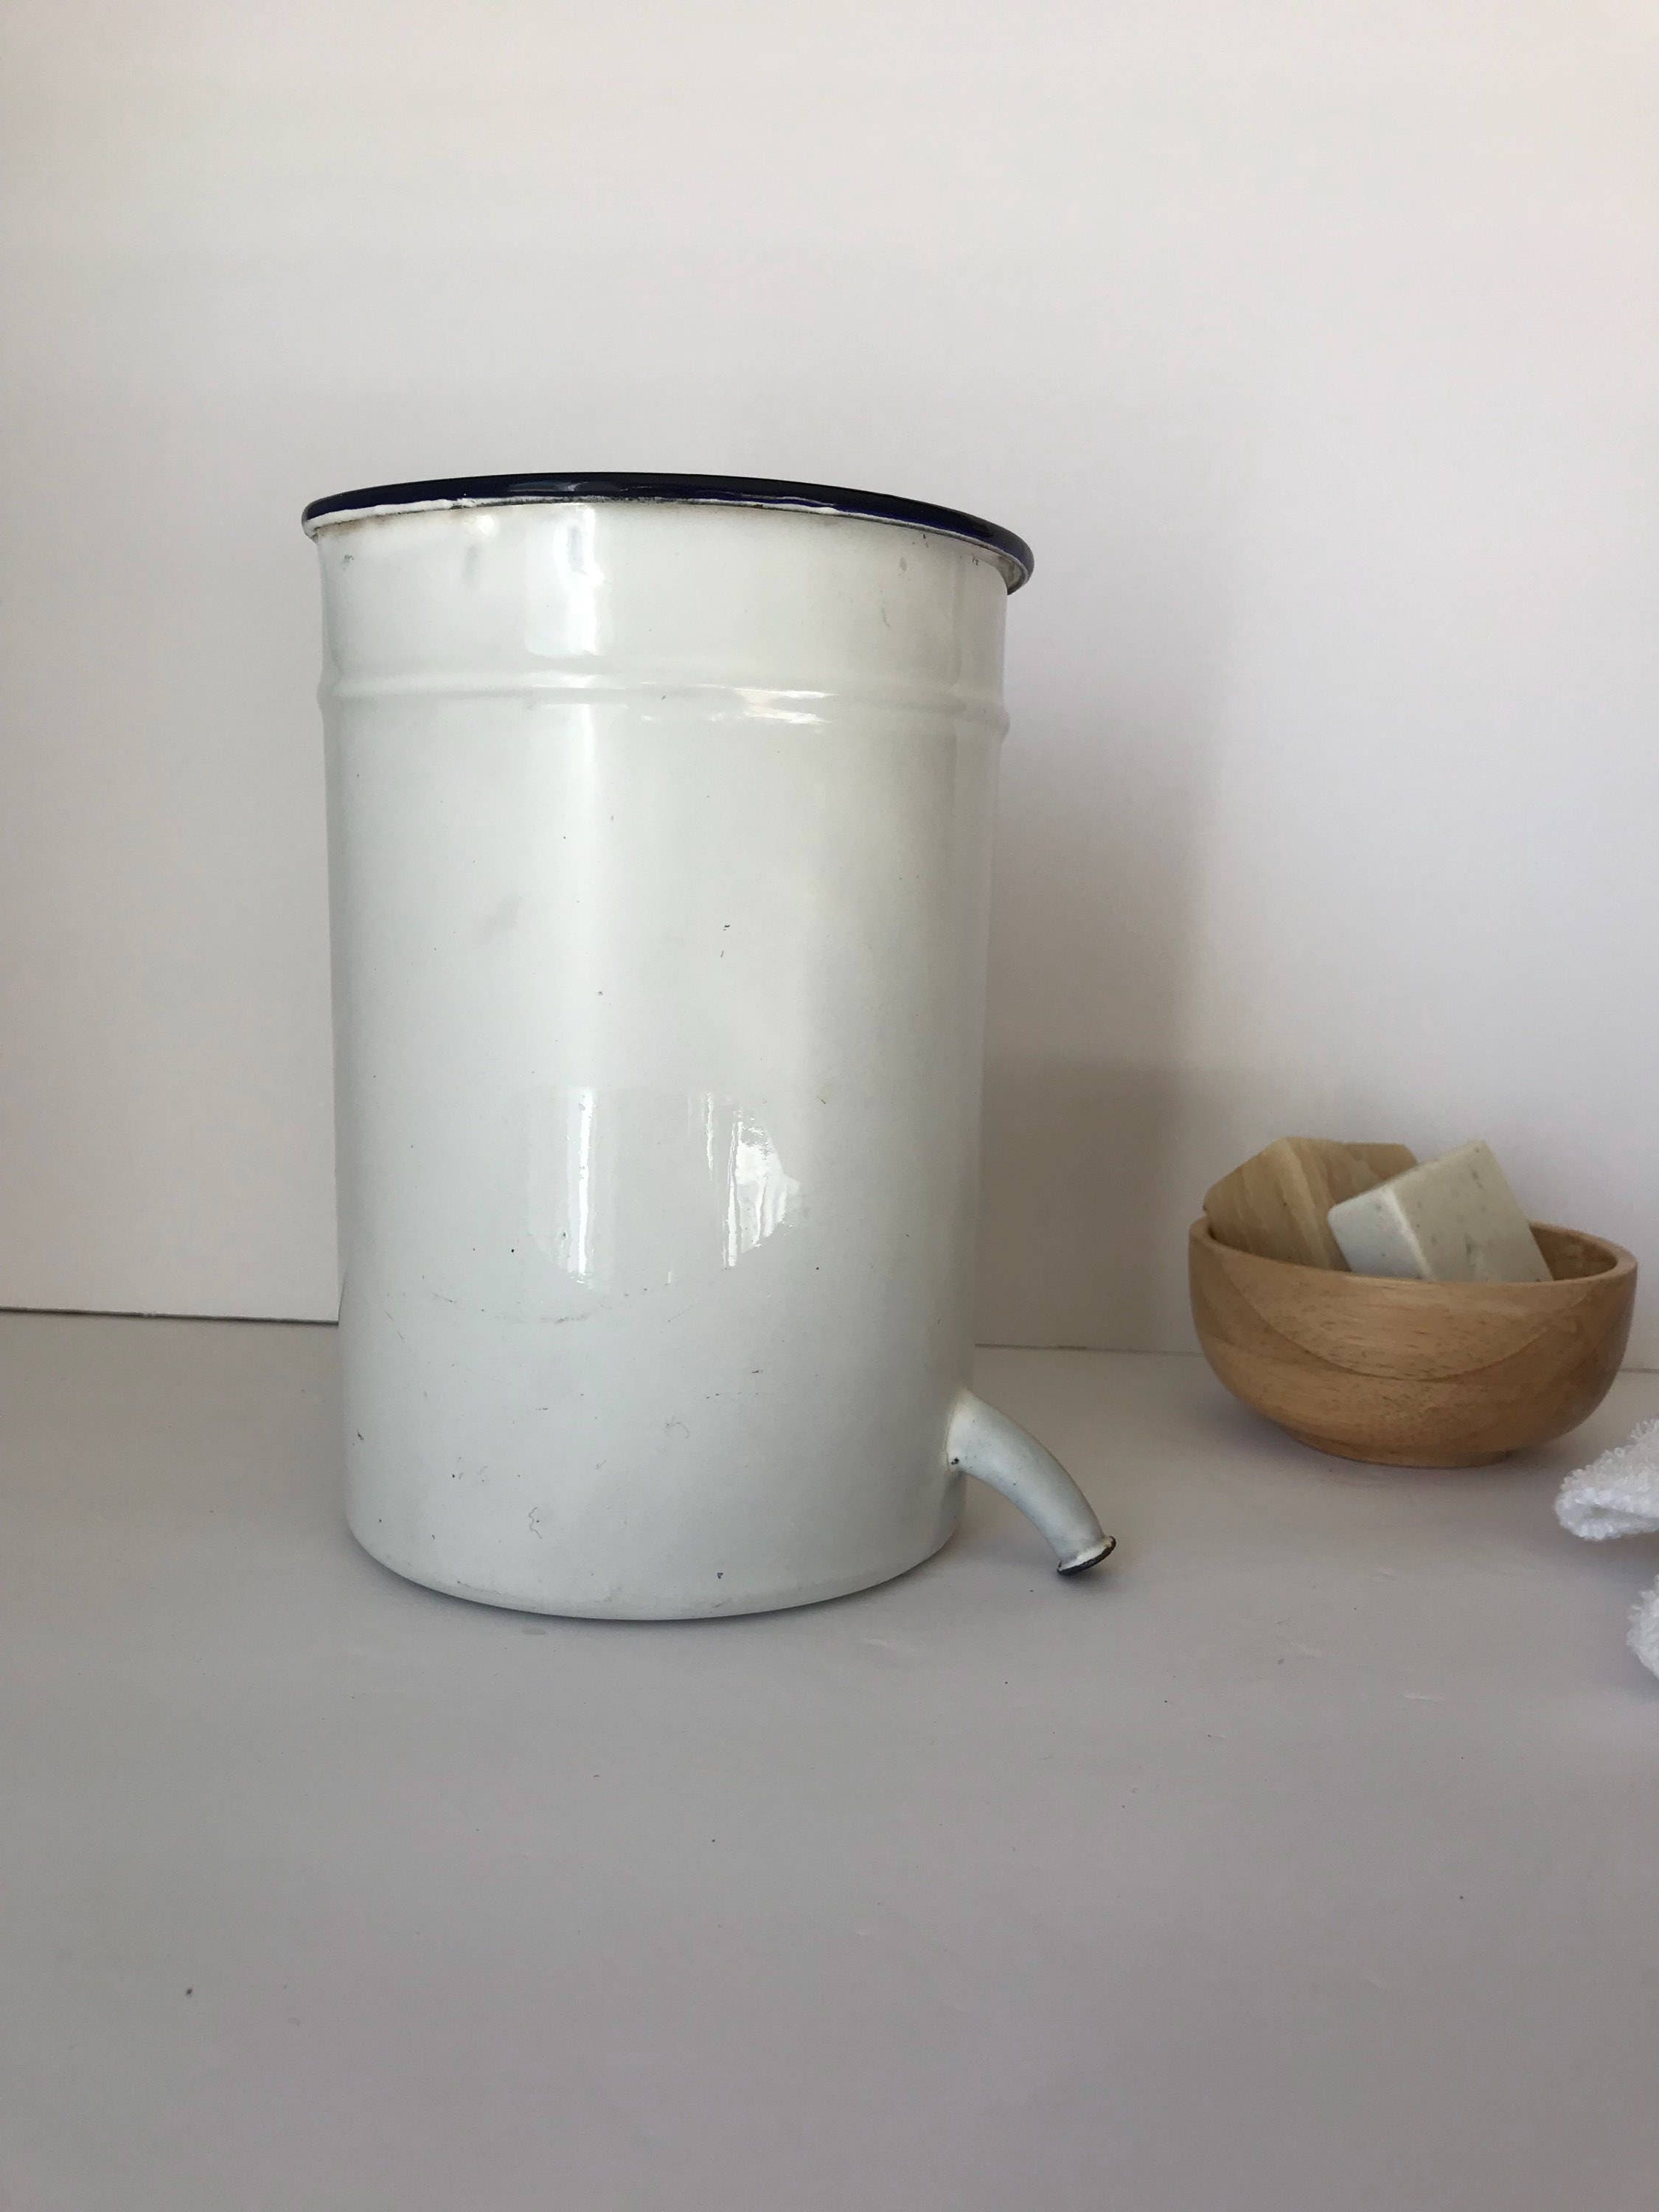 Vintage Enamelware White Enamelware Container With Spout